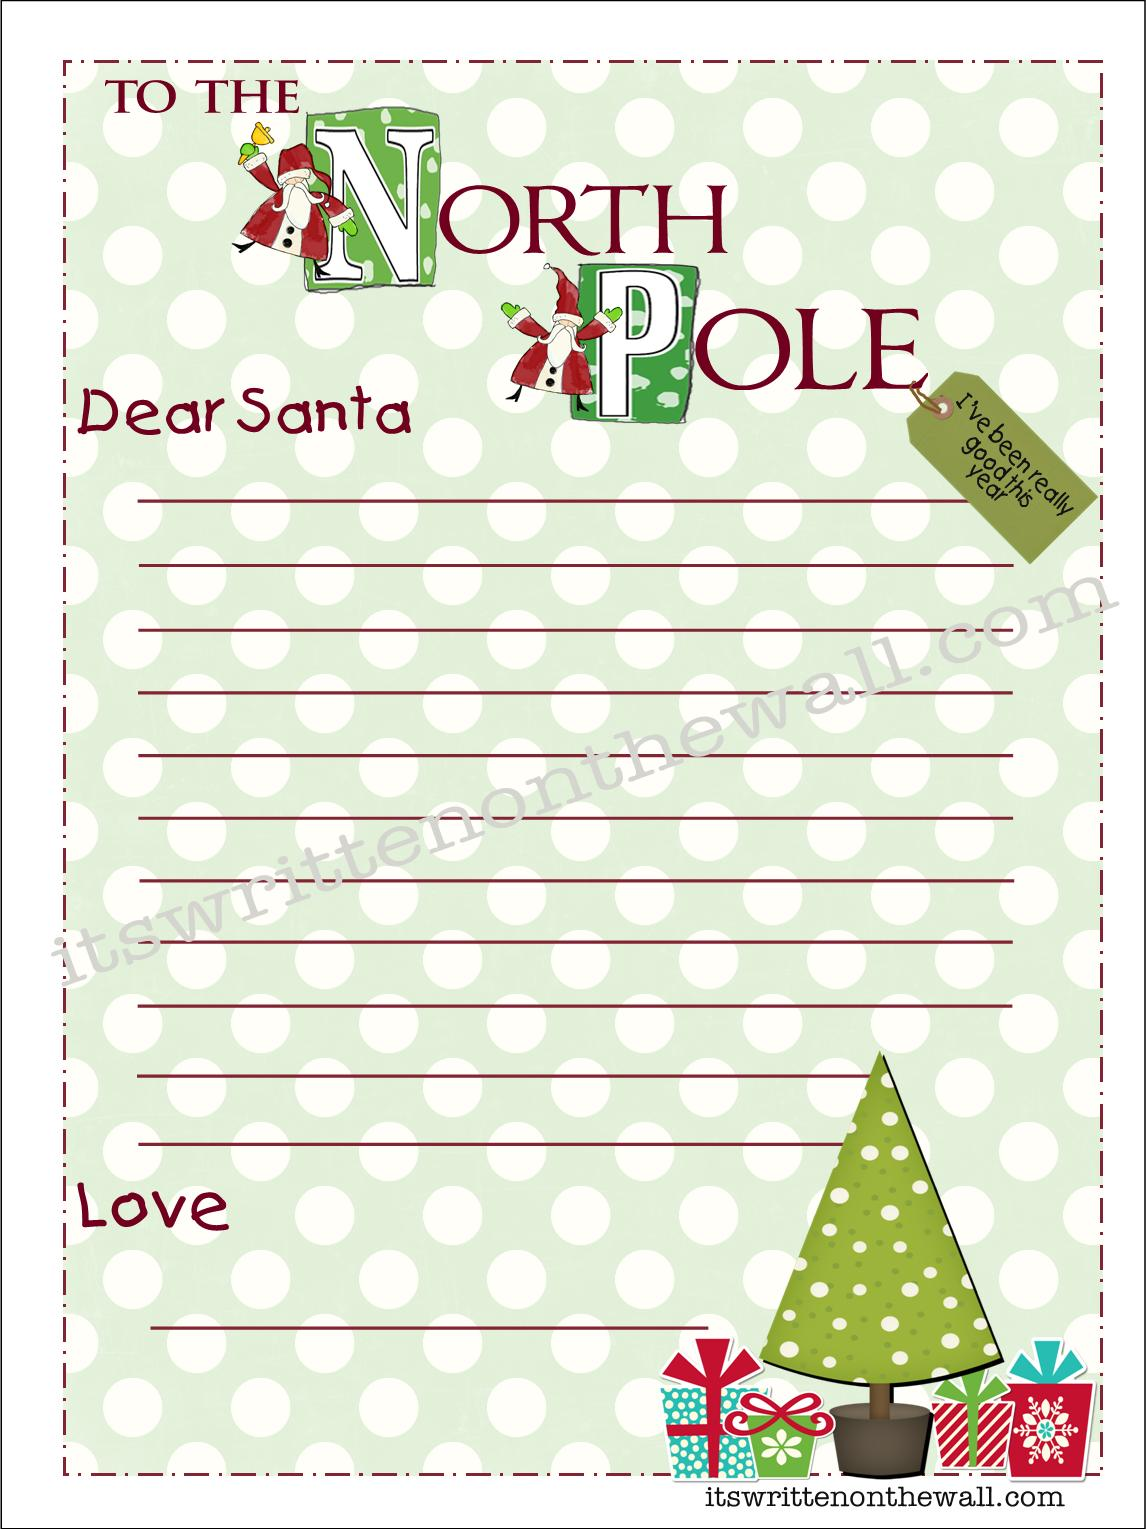 search results for santa letter background calendar 2015 search results for letters template free 126